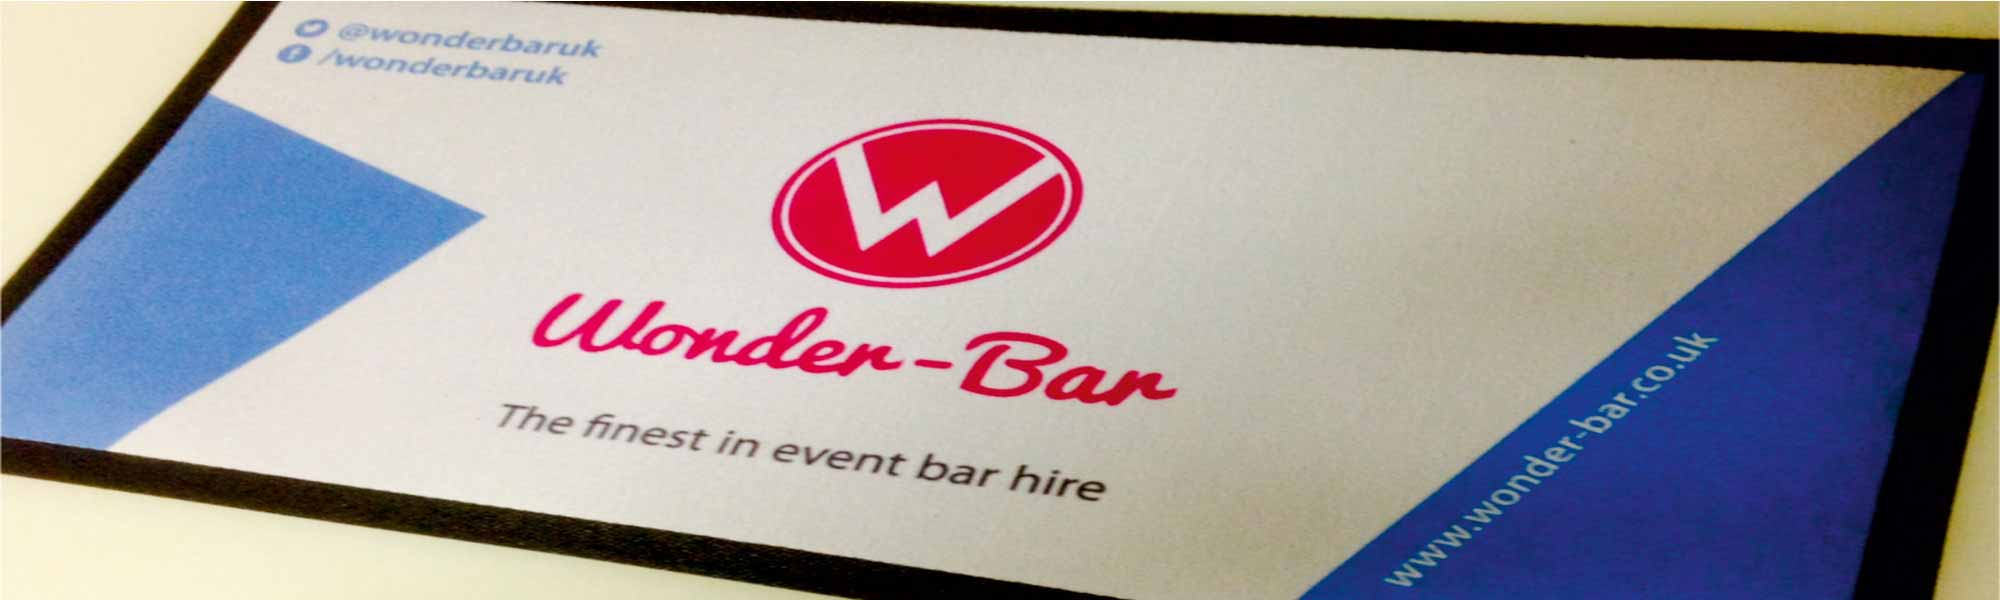 Wonder-Bar bar runner